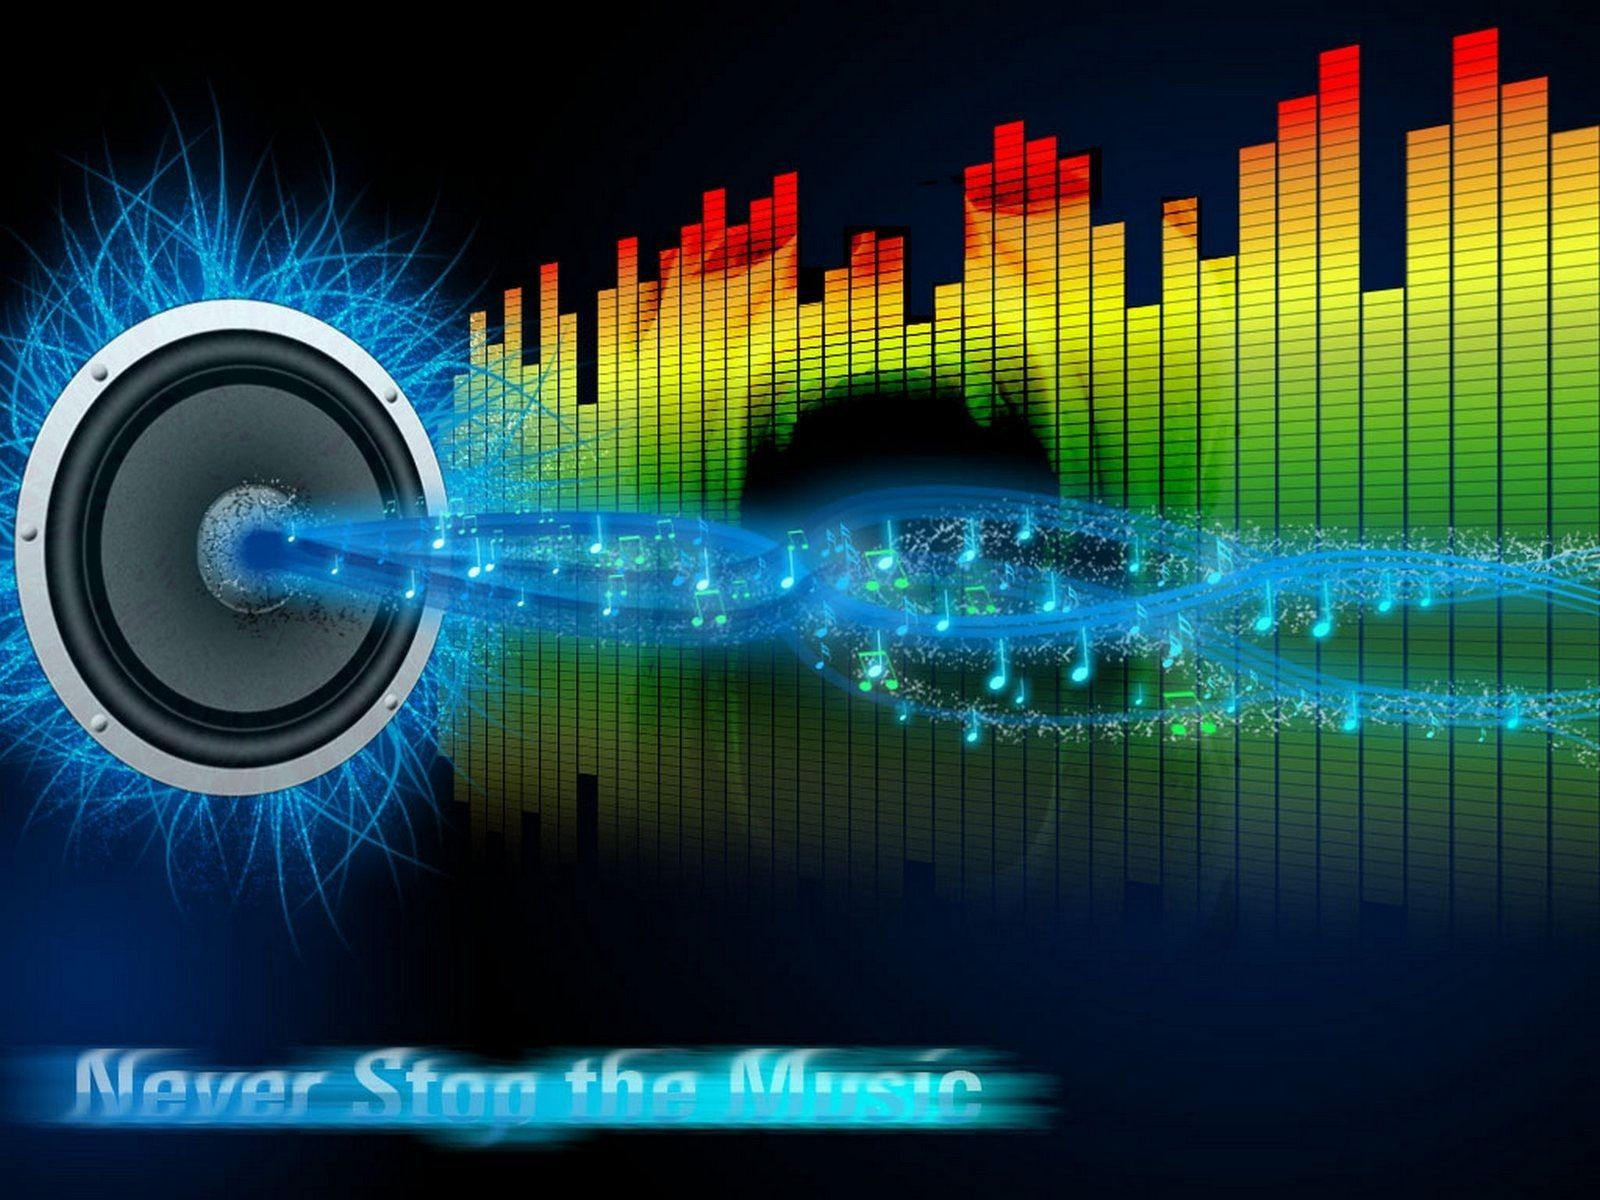 Download cool backgrounds music Seni 3d, Seni, Hiburan